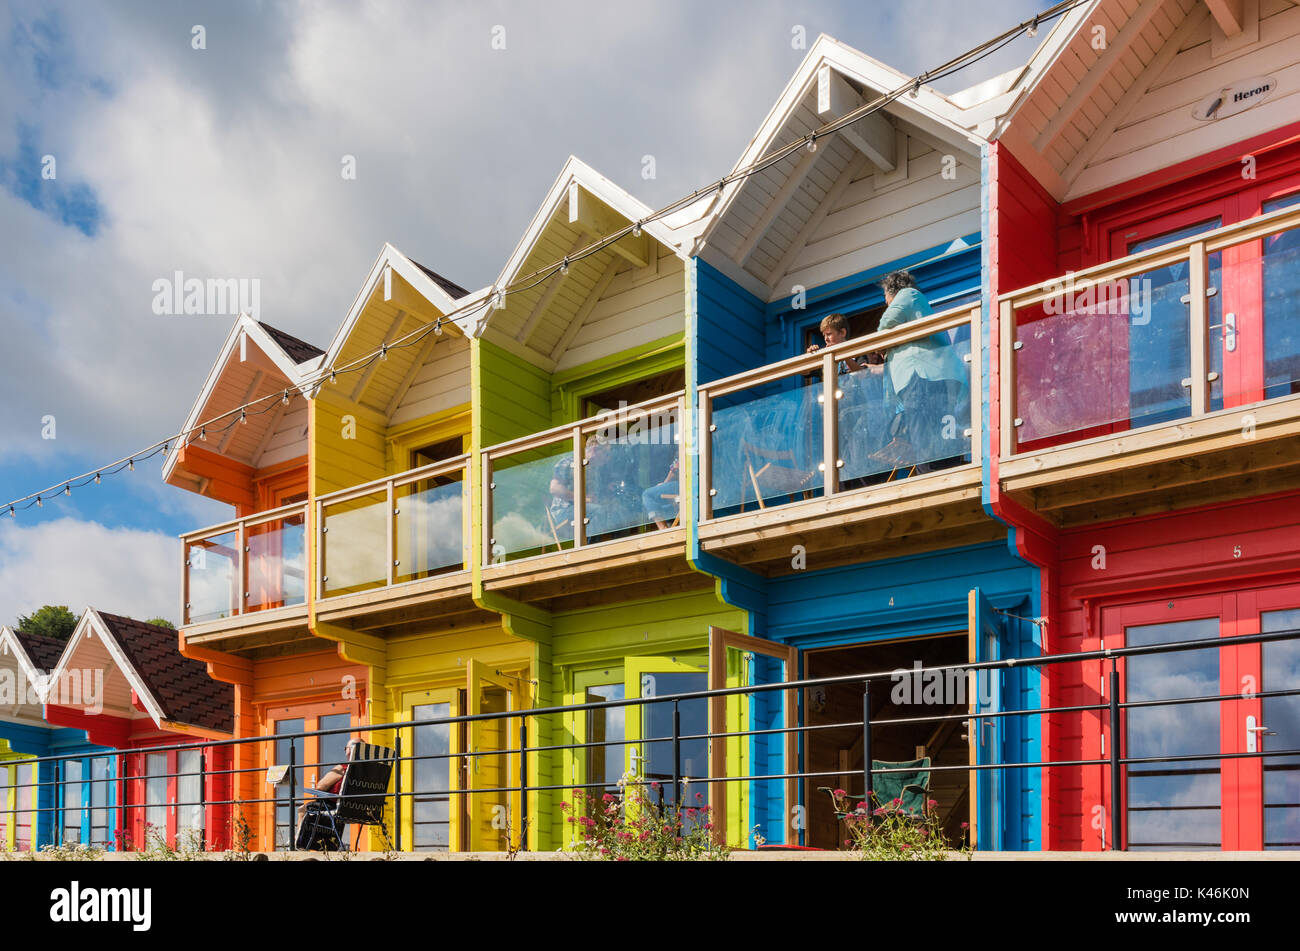 The colourful beach huts in Scarborough's North Bay - Stock Image